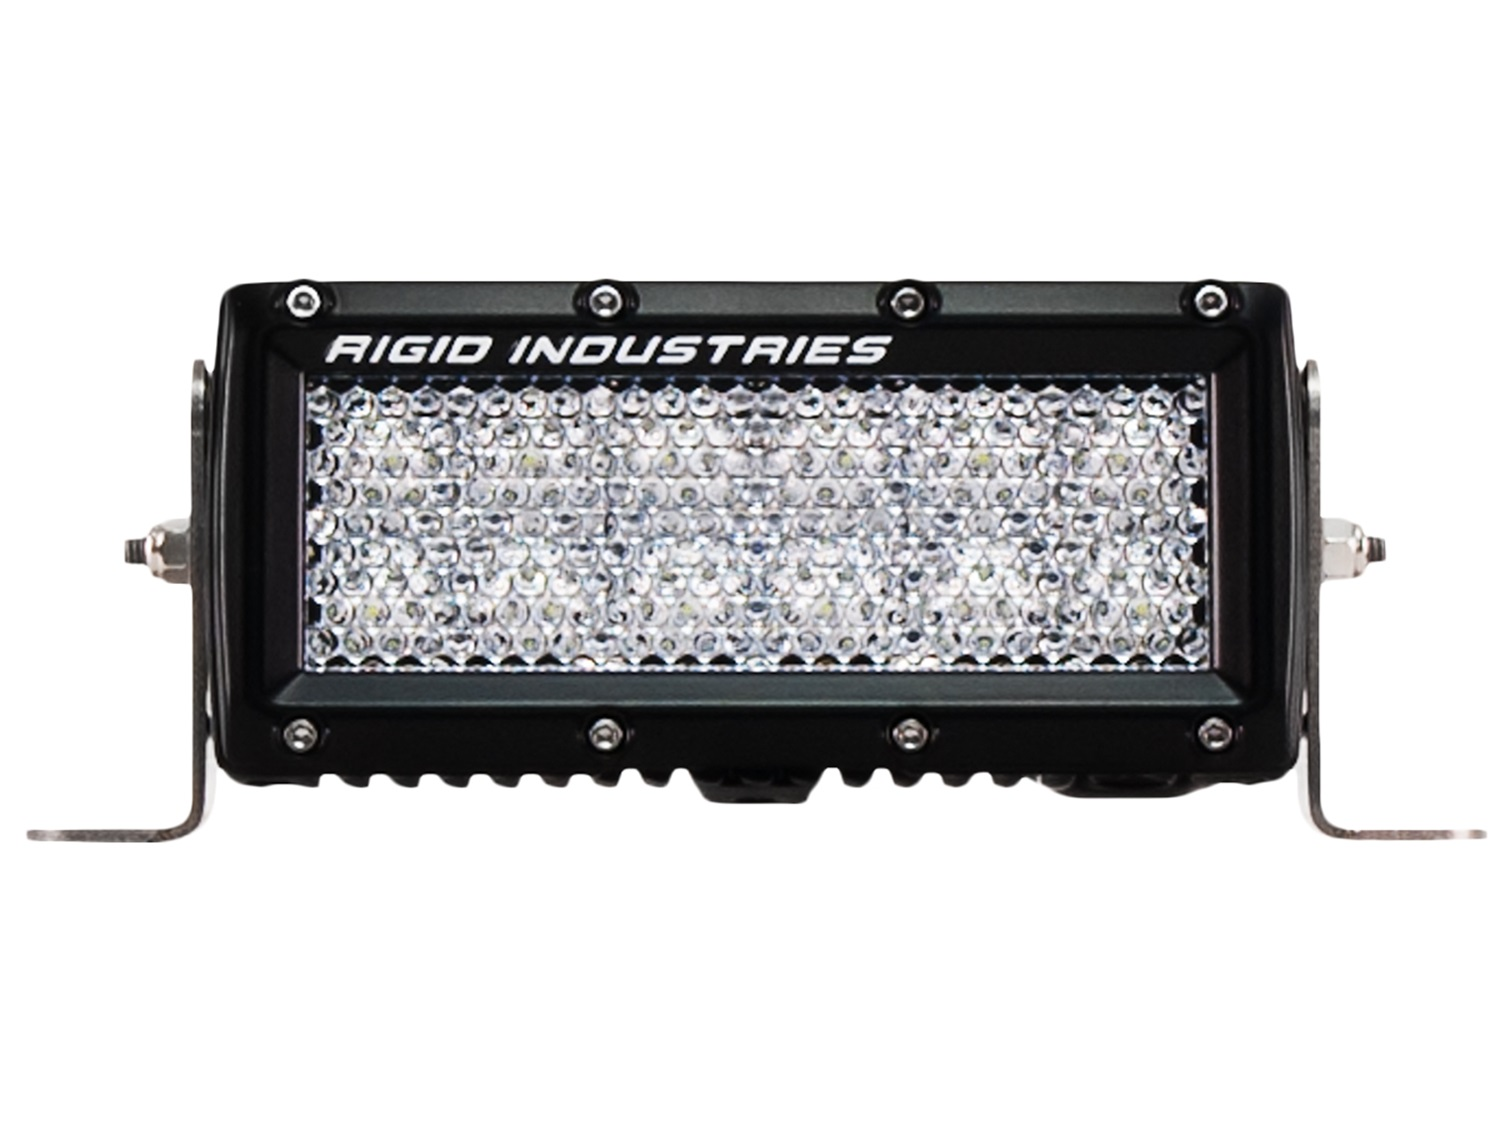 Rigid Industries 106512 E-Series 60 Deg. Diffusion LED Light